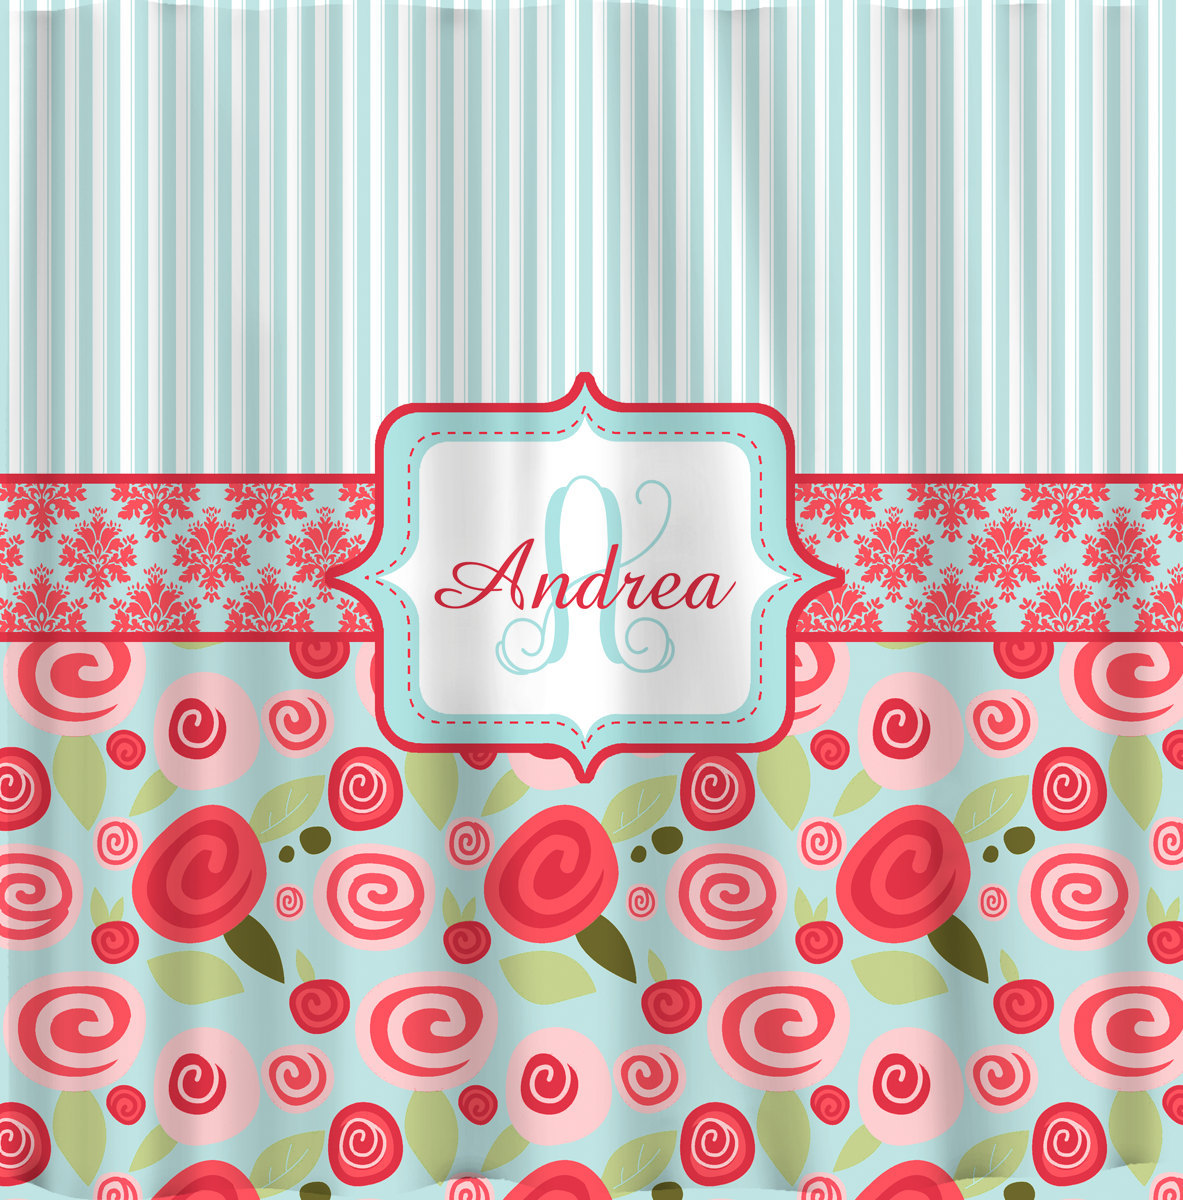 NEW!! Modern Shabby Chic Rose Collection Personalized Shower Curtain-Stripes, Da